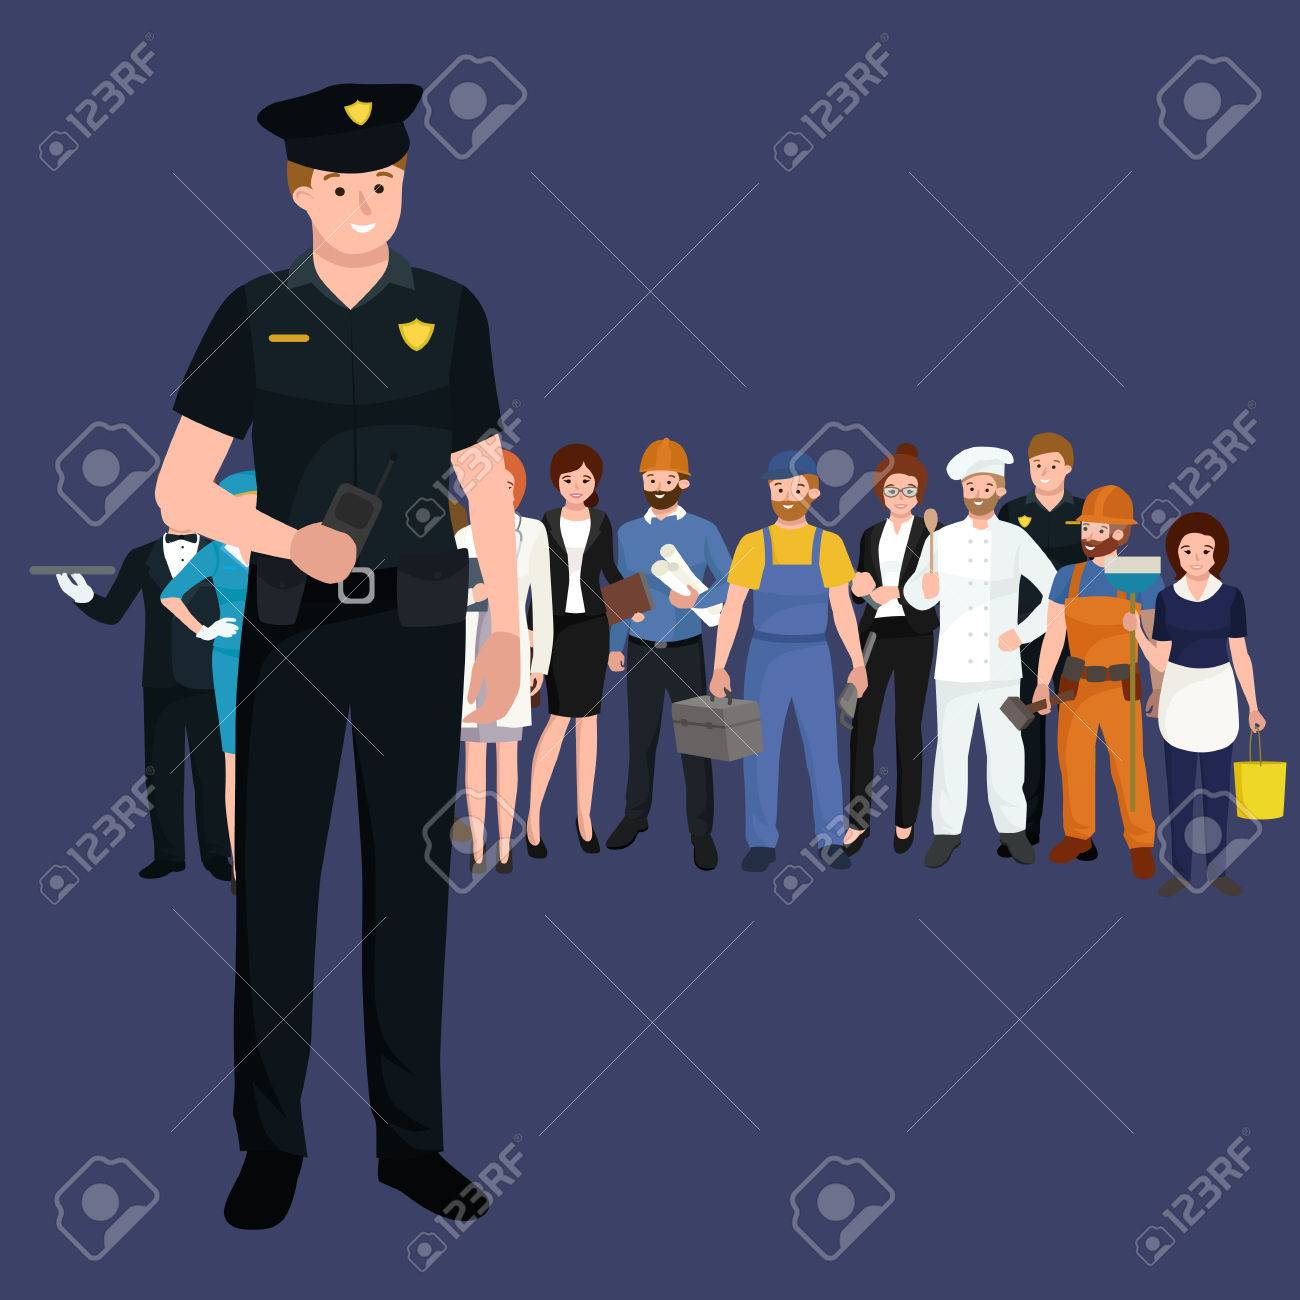 Serve and protect. Police man, officer male, vector illustration workers team - 56392027